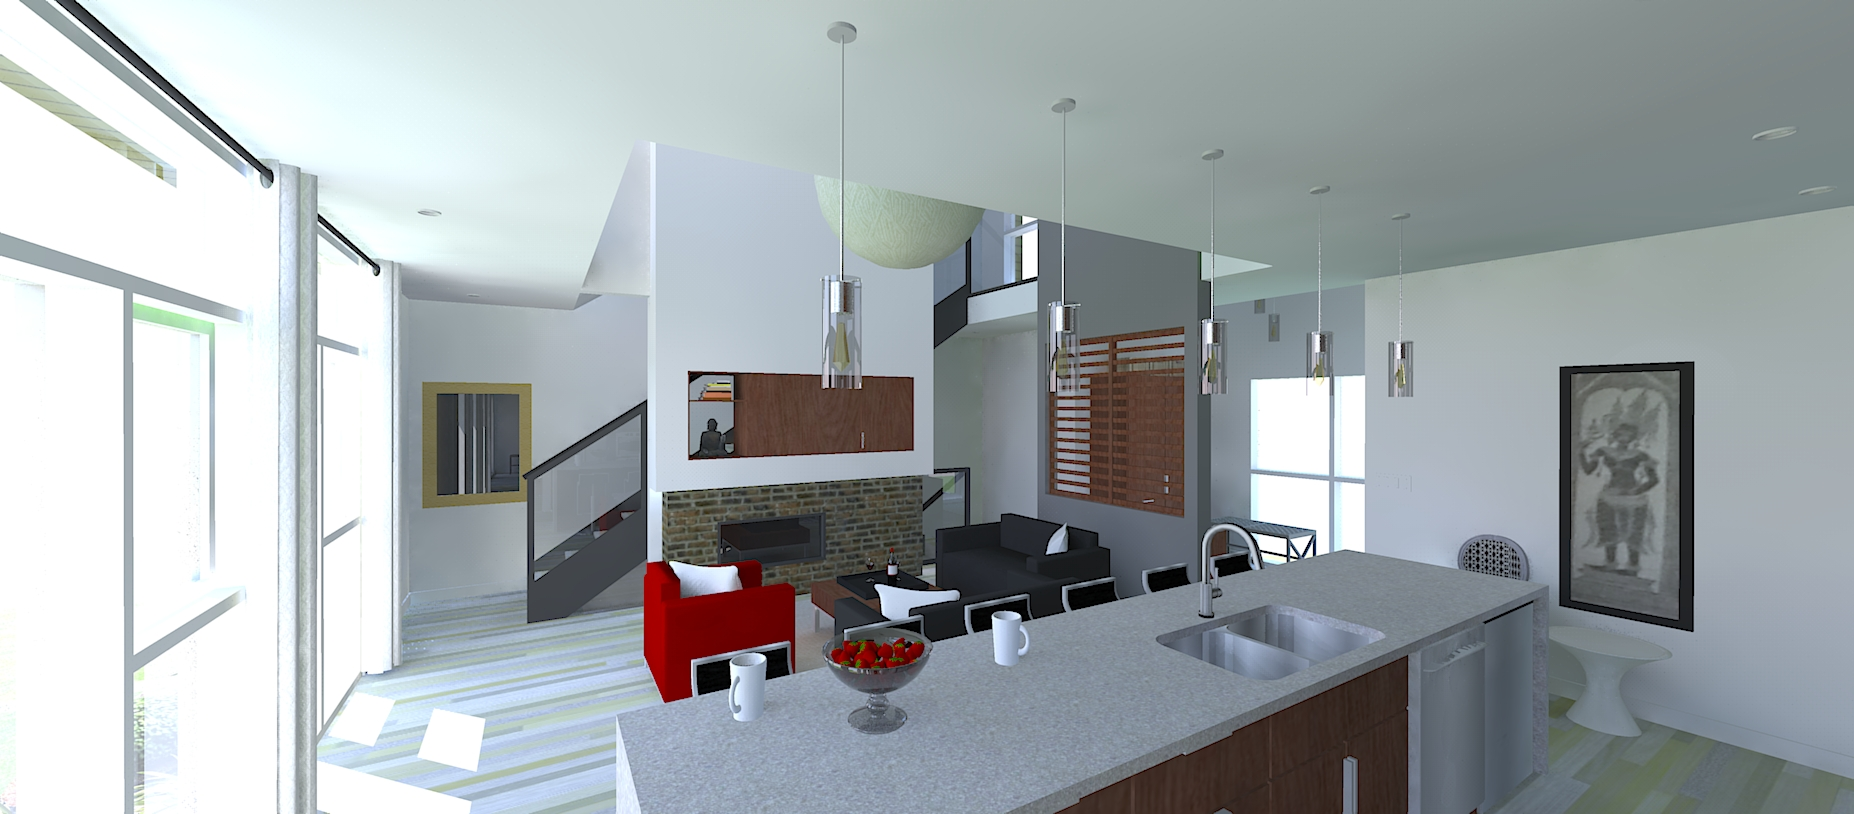 15 - Kitchen to Living Room.jpg